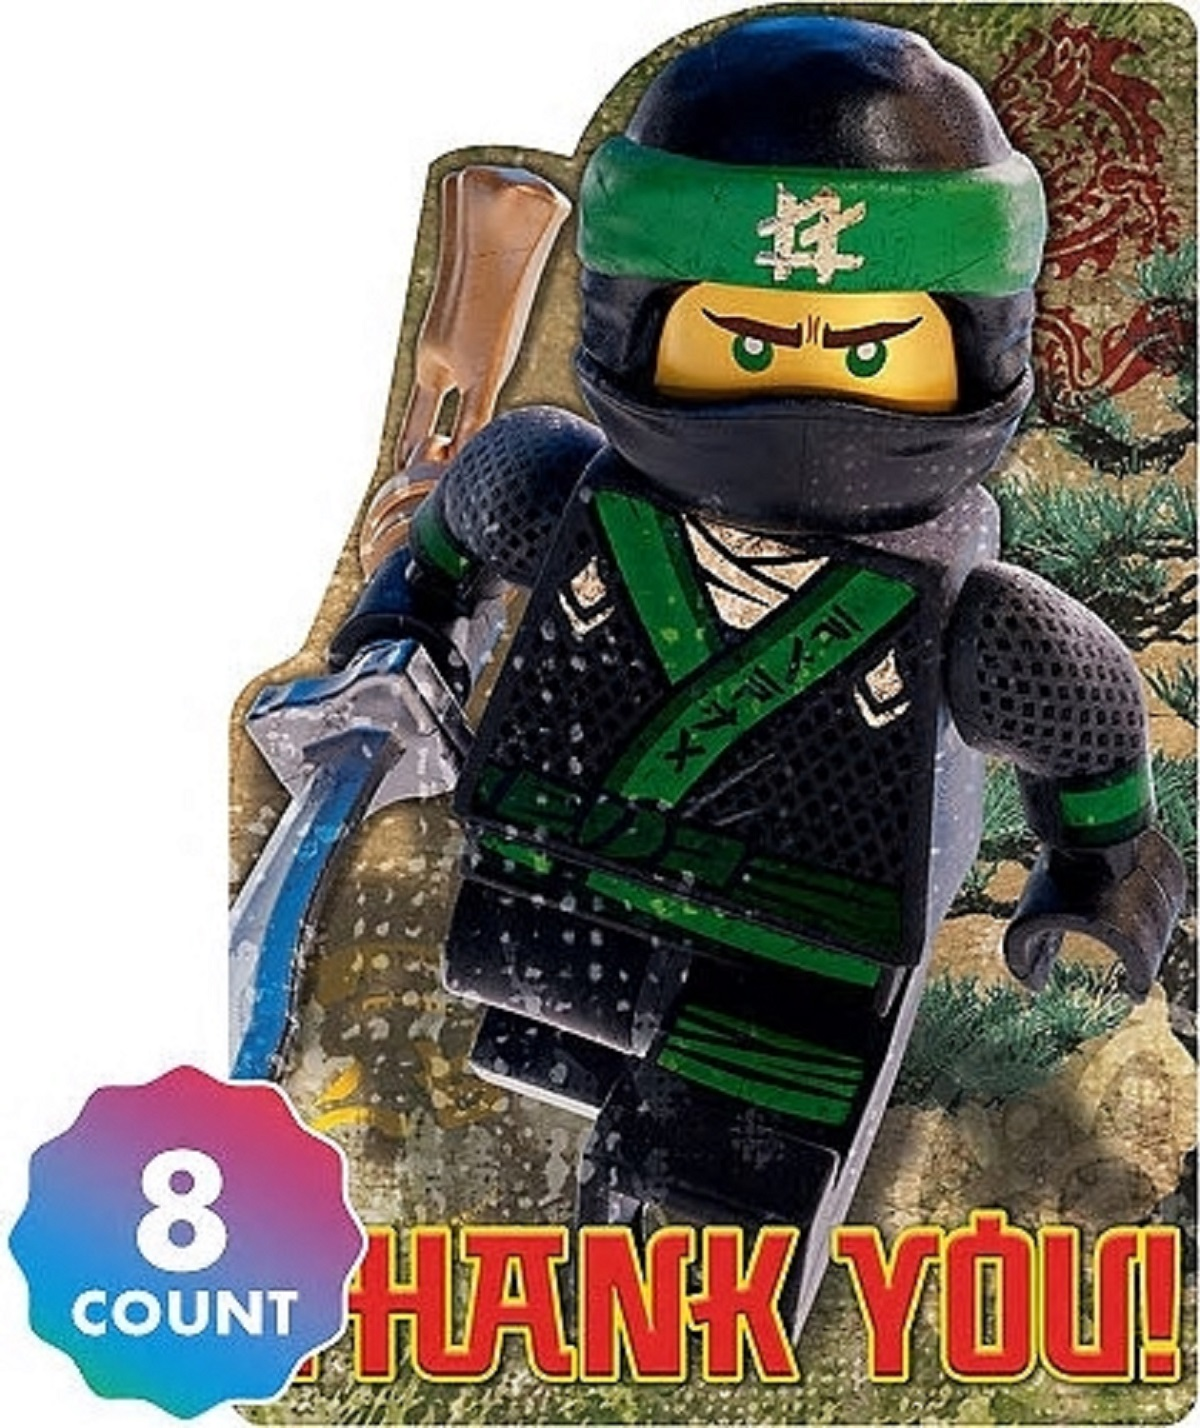 pack of 8 Party Favor Lego Ninjago Treat Cups